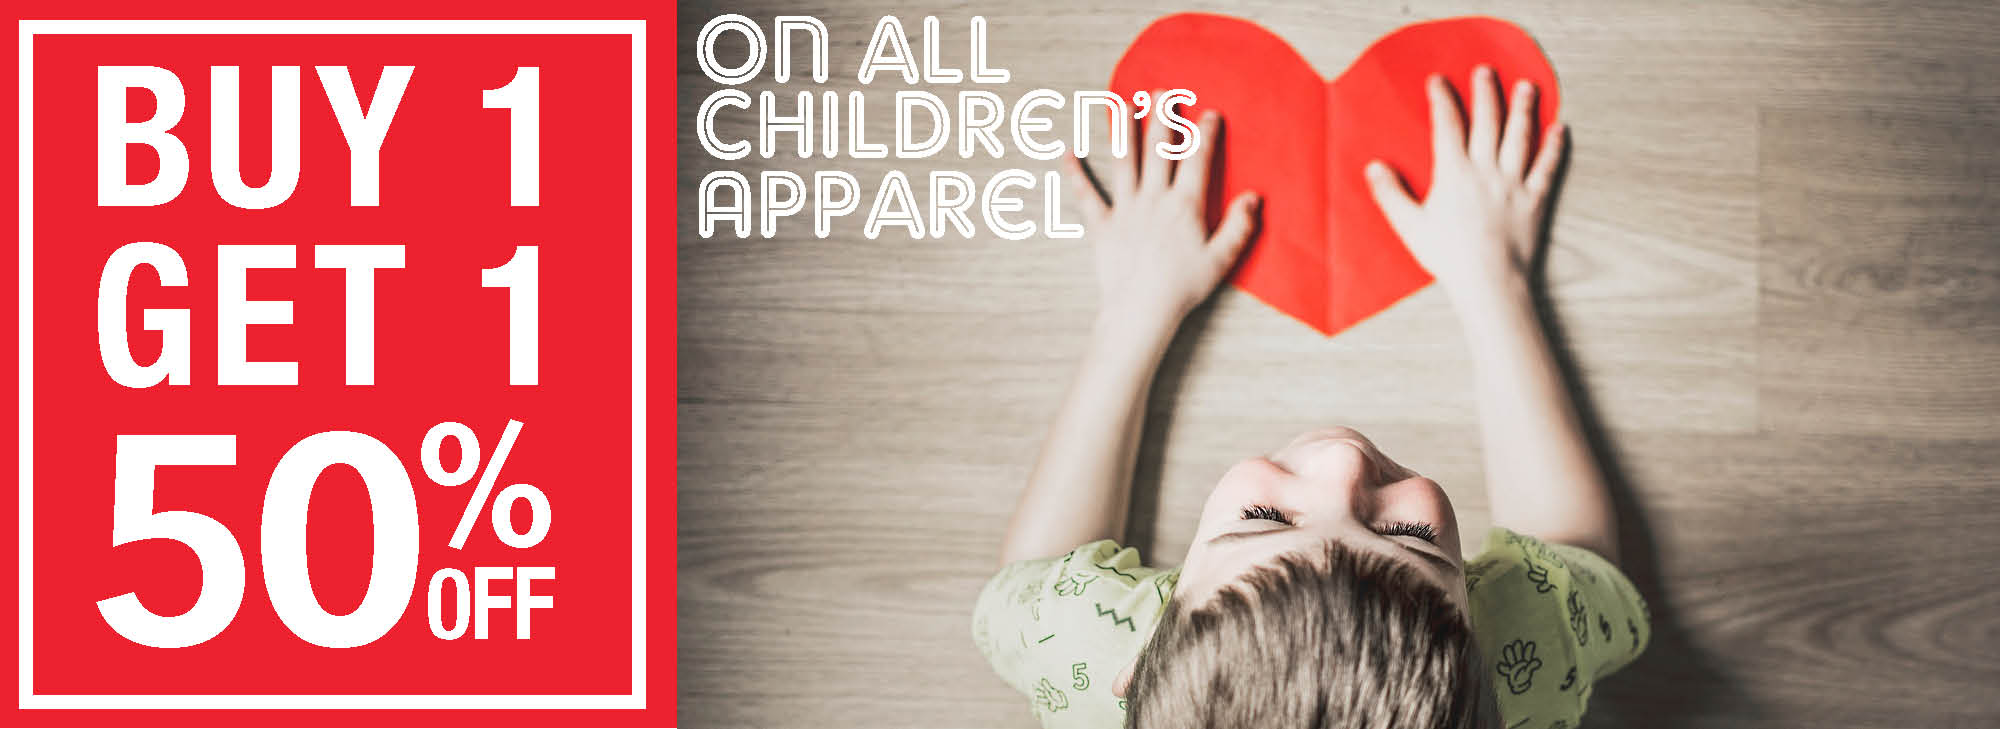 Buy one get one 50% off on all children's apparel